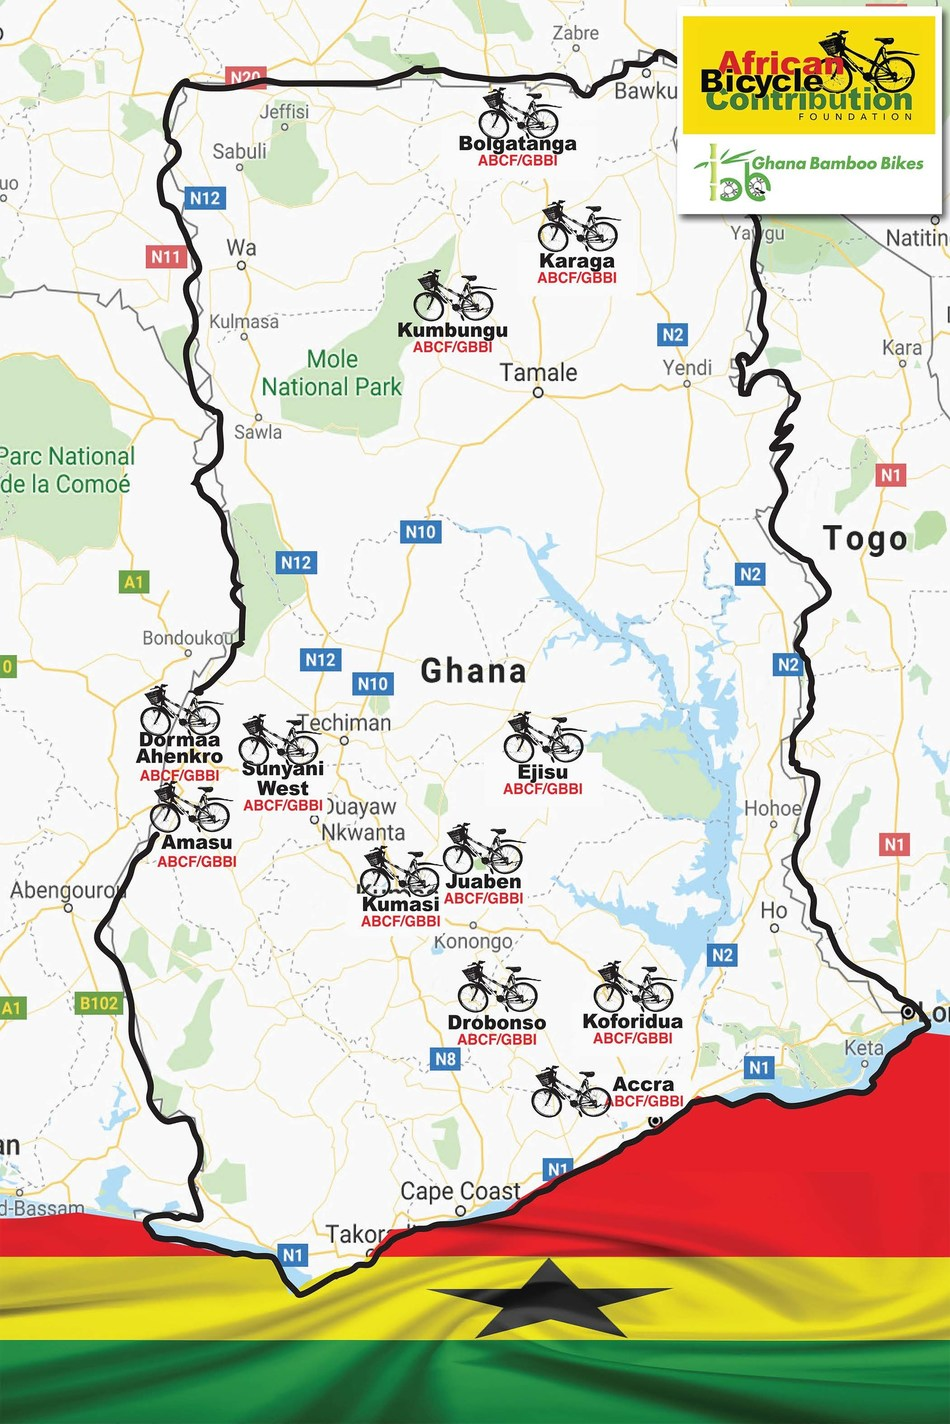 Map of Ghana with ABCF/GBBI icons marking bamboo bike distribution sites (April 18, 2019).